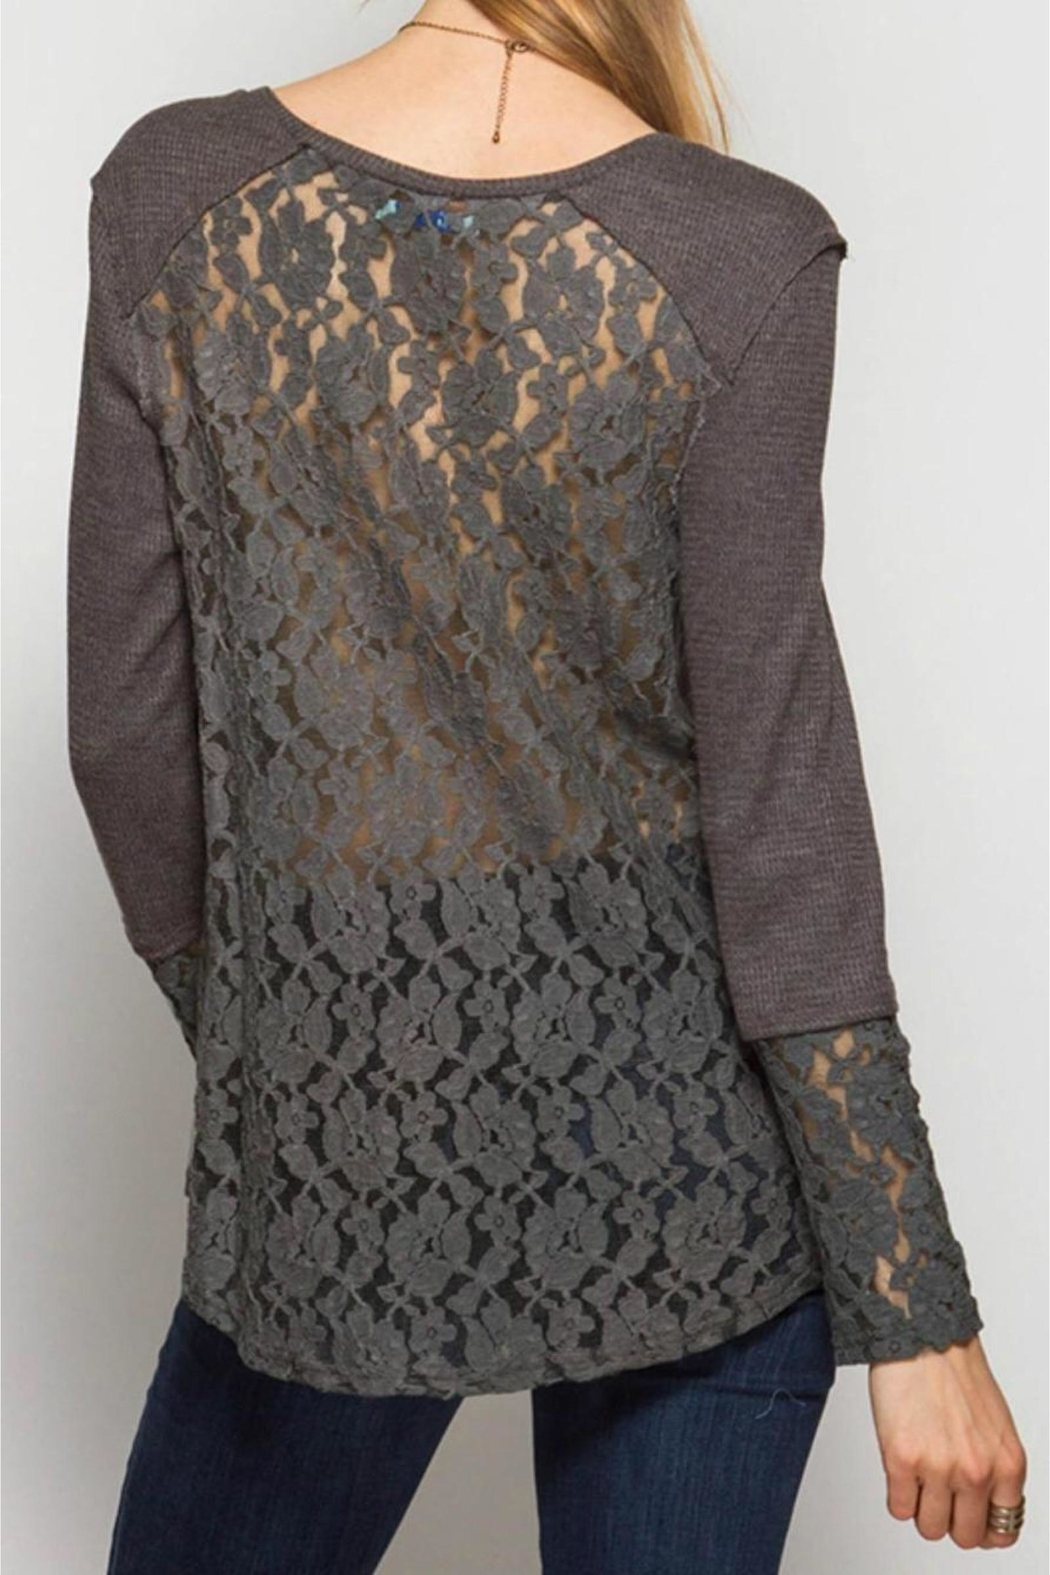 People Outfitter Lace Thermal Top - Front Full Image